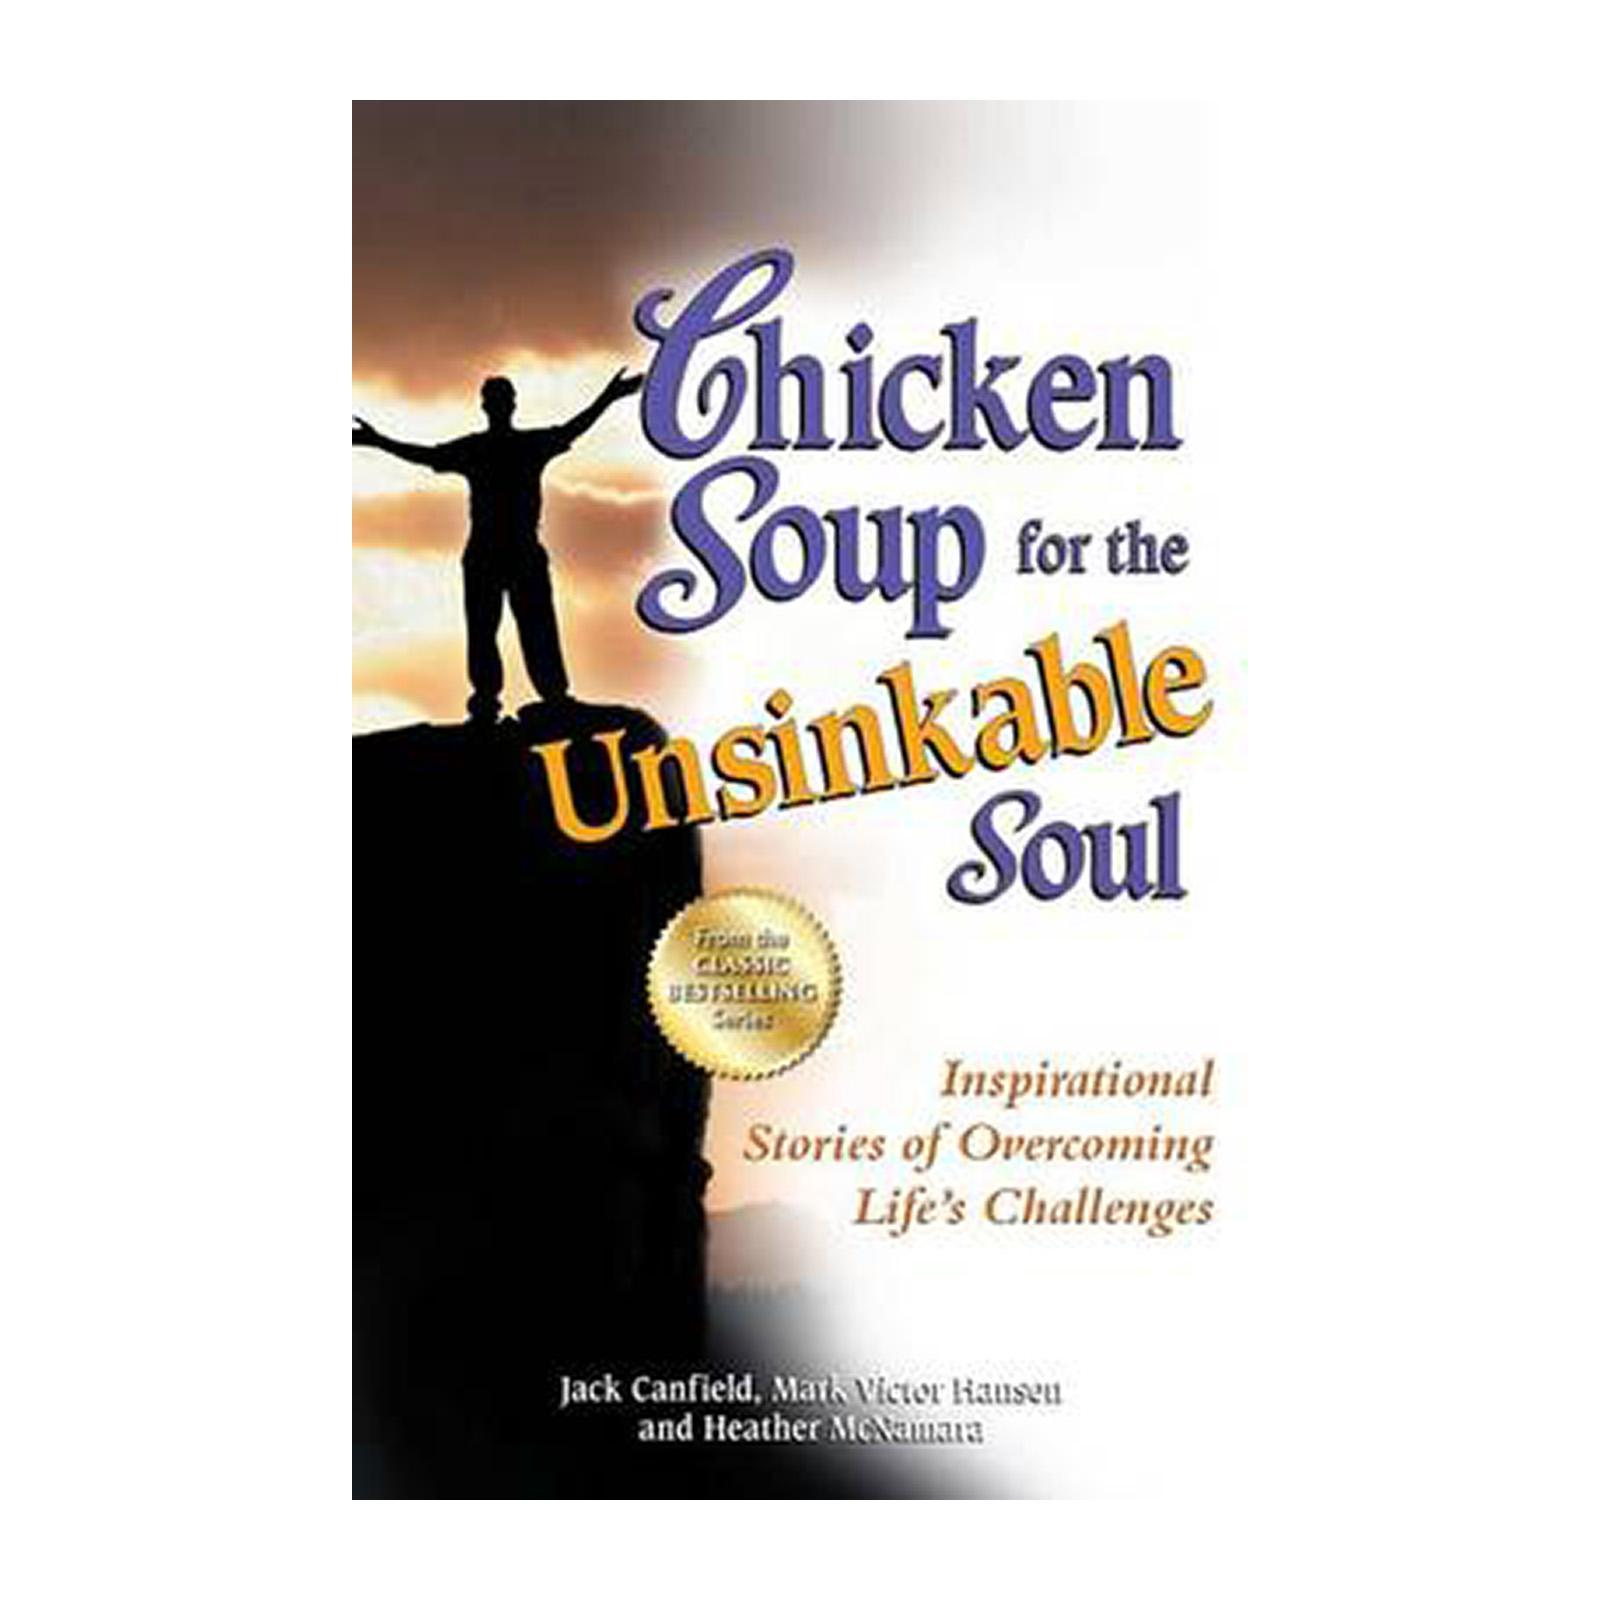 Chicken Soup For The Unsinkable Soul: Inspirational Stories Of Overcoming Lifes Challenges (Paperback)